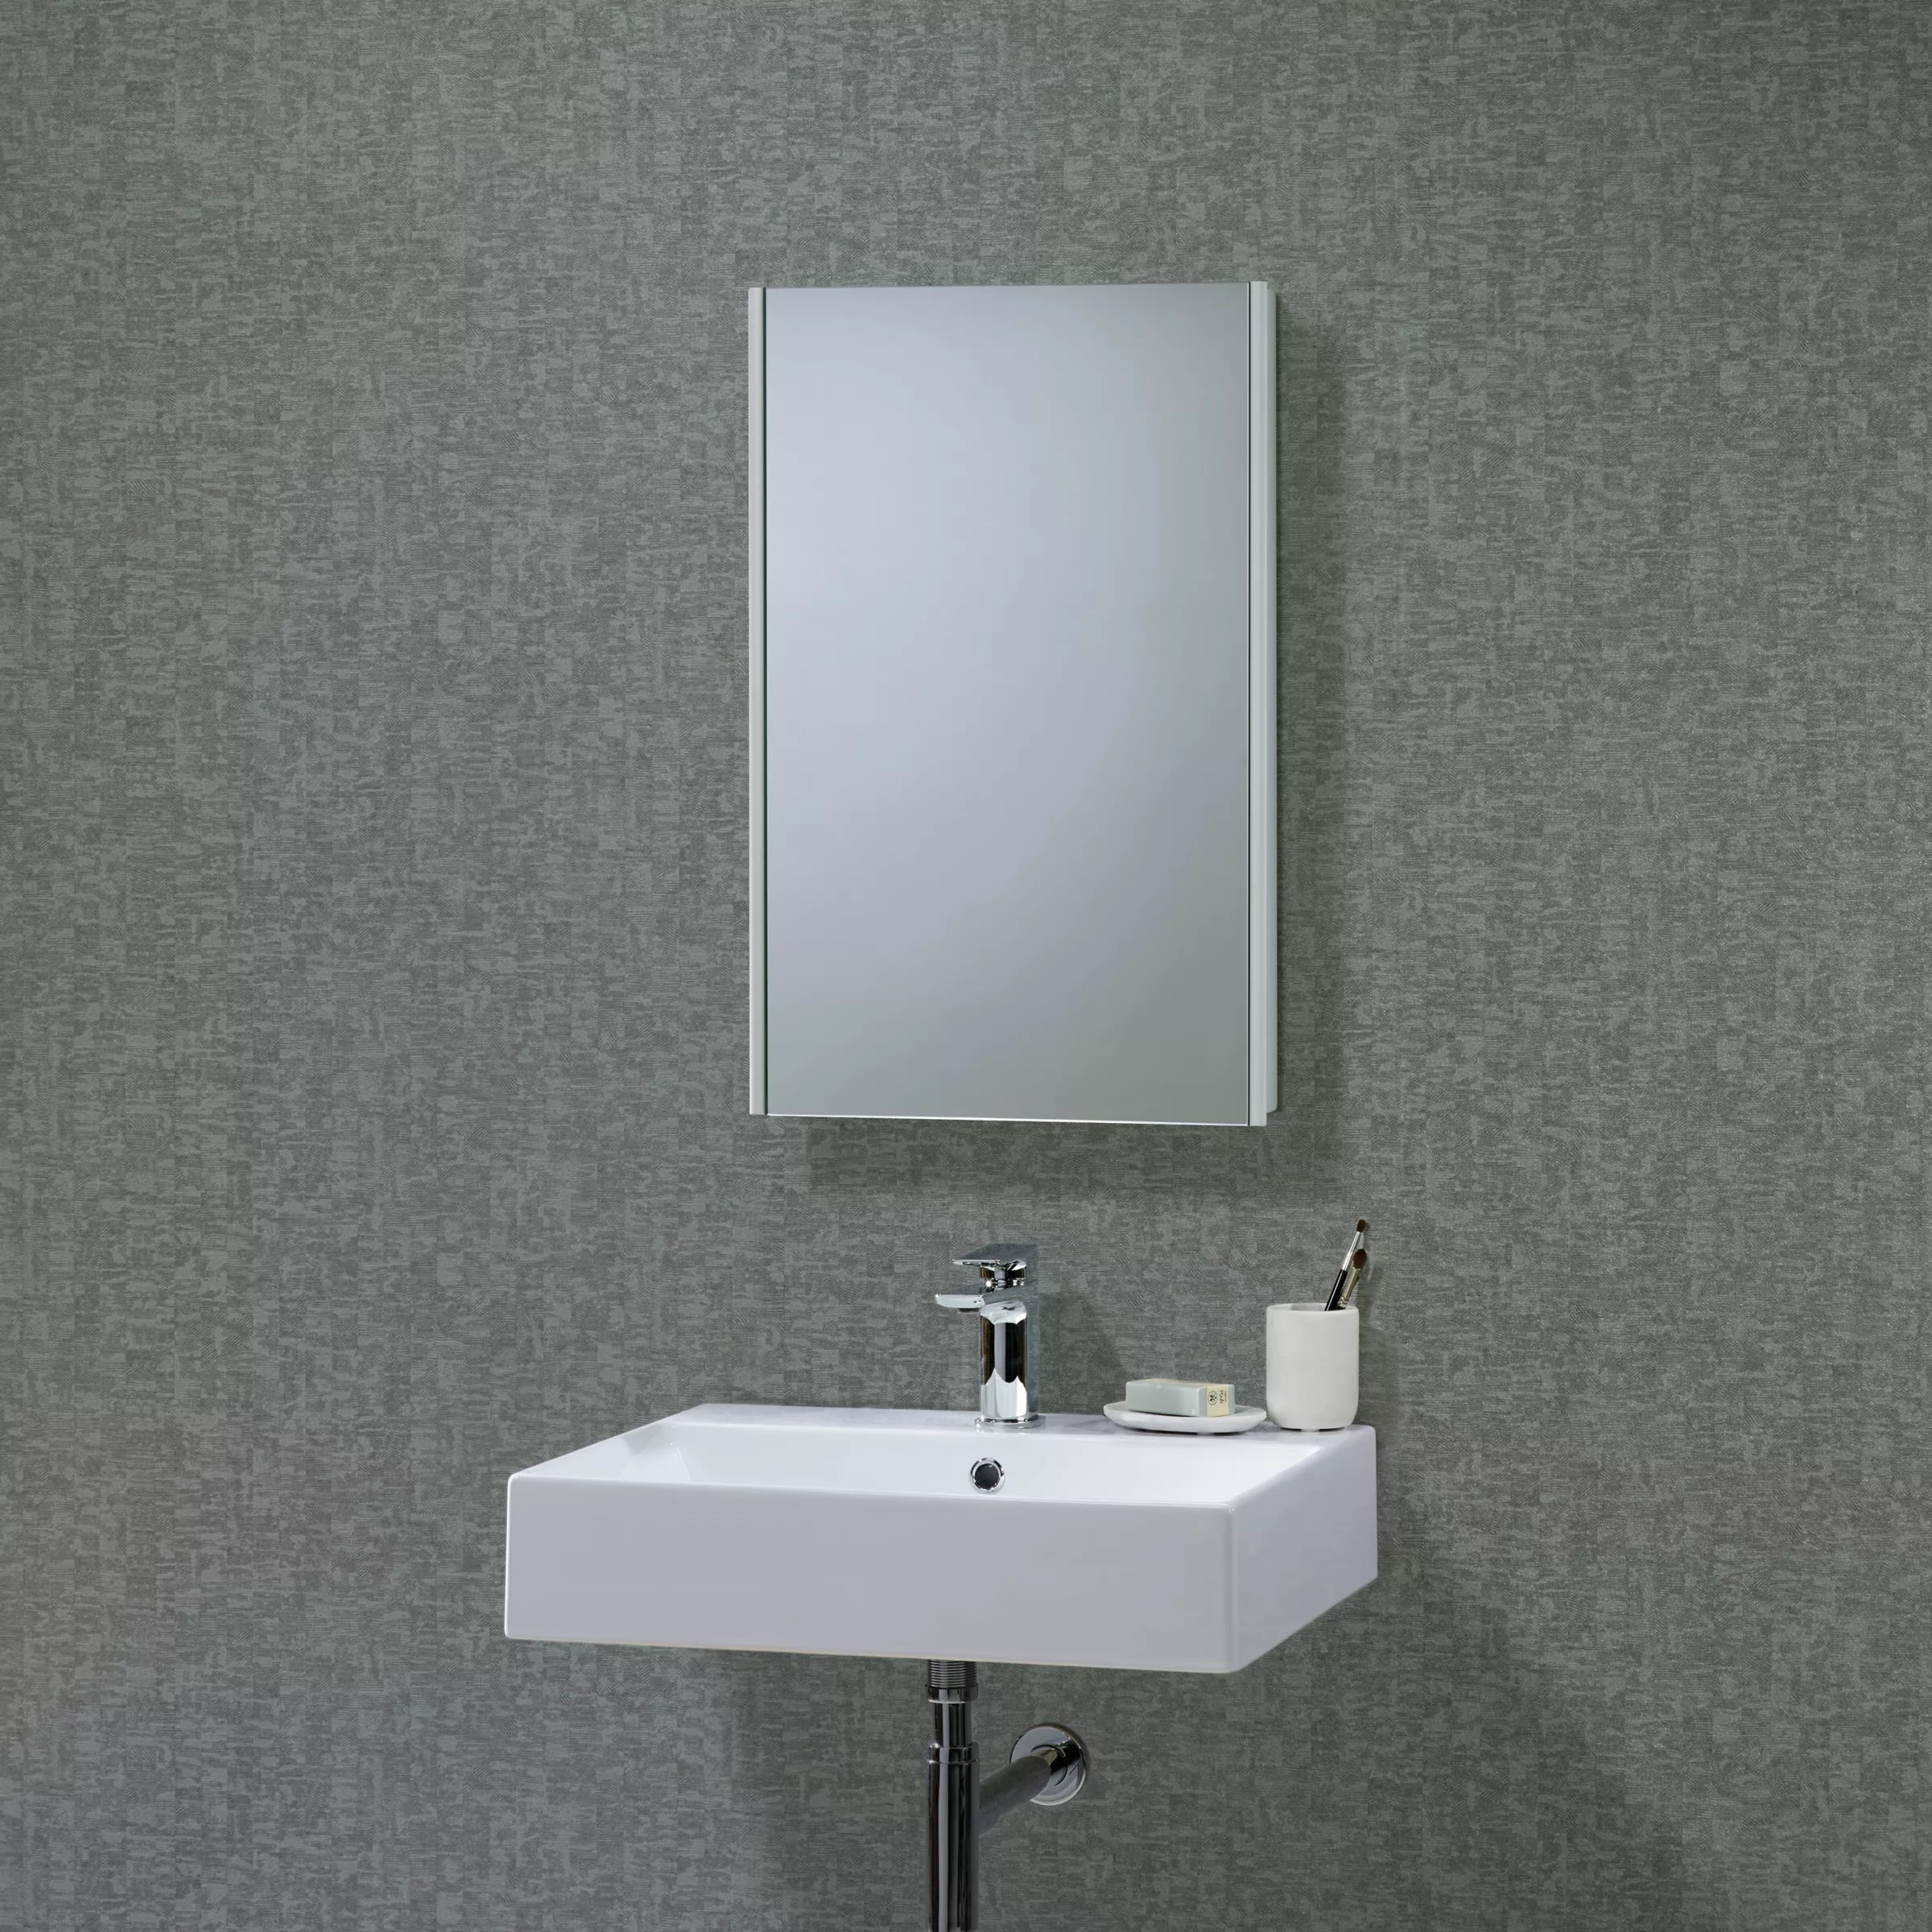 Mirrored Bathroom Cupboard Roper Rhodes Limit Slimline Single Mirrored Bathroom